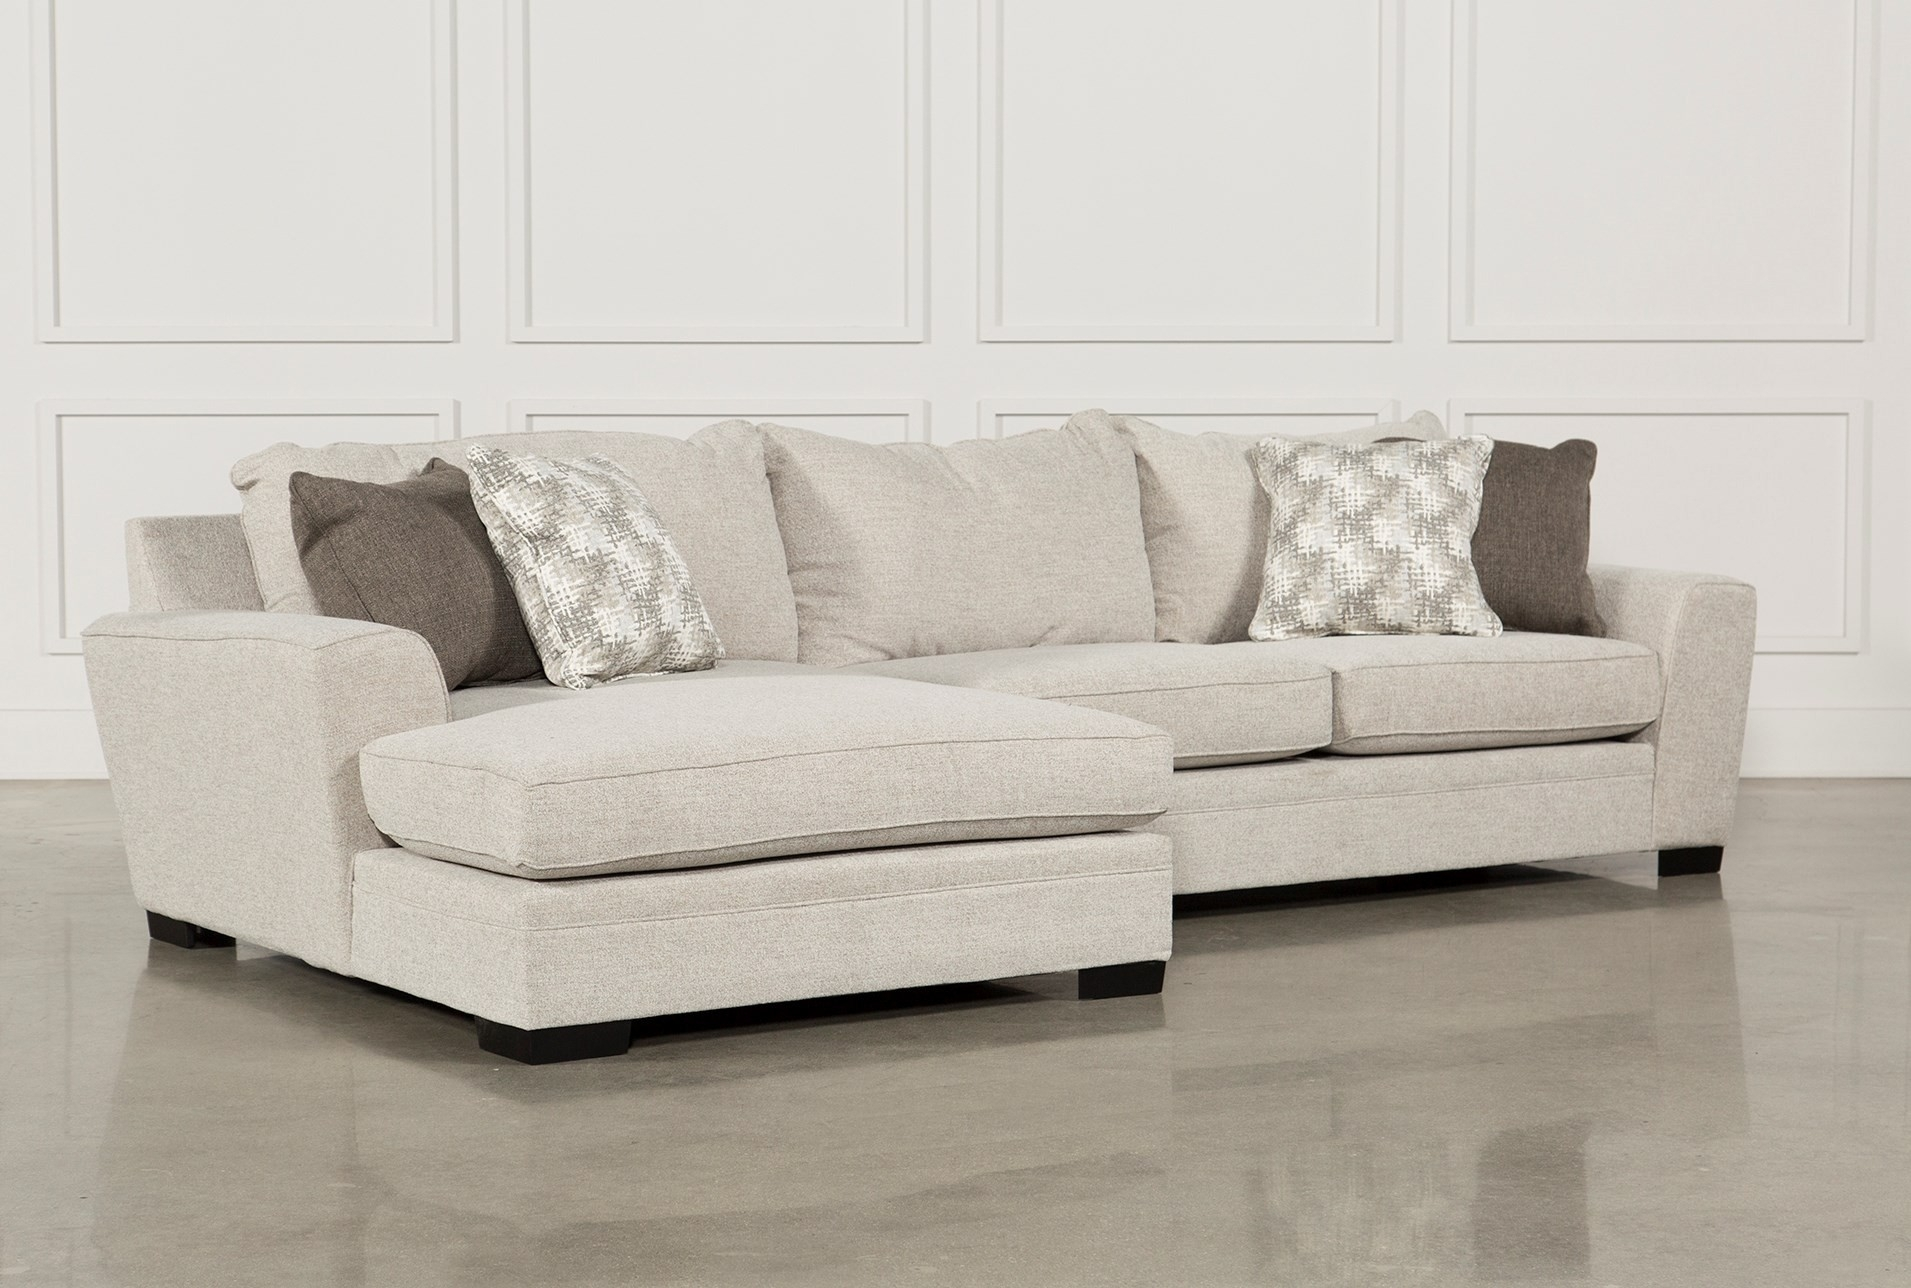 Living Spaces Sectional Sofas - Implantologiabogota.co throughout Aspen 2 Piece Sleeper Sectionals With Raf Chaise (Image 20 of 30)